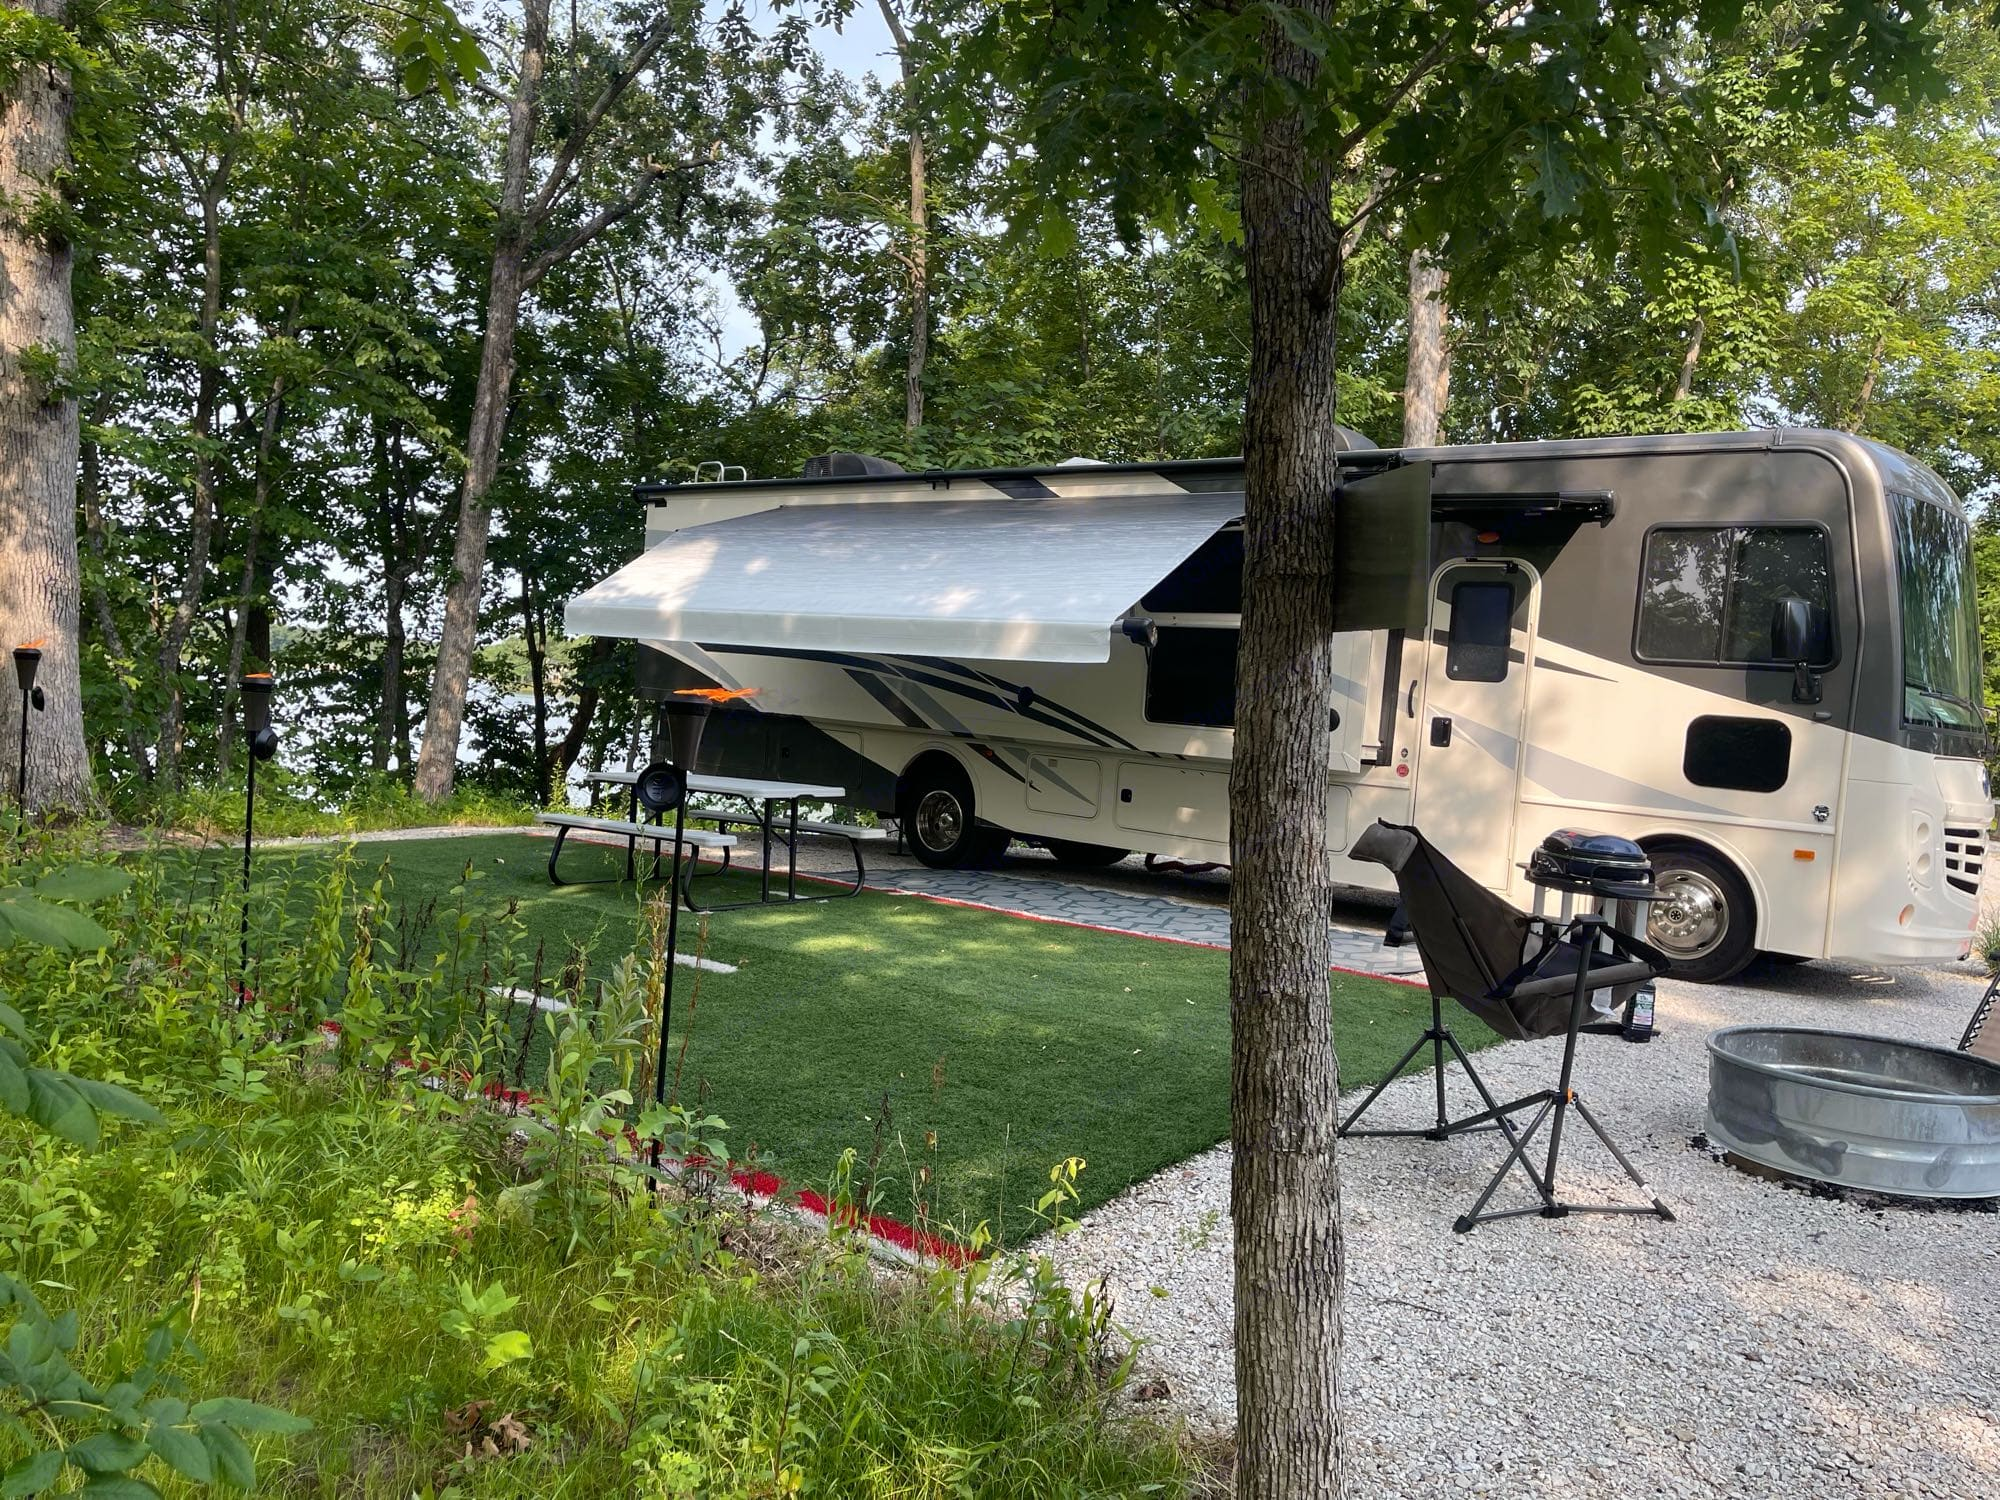 Lighted awning extended. Holiday Rambler Admiral 2020